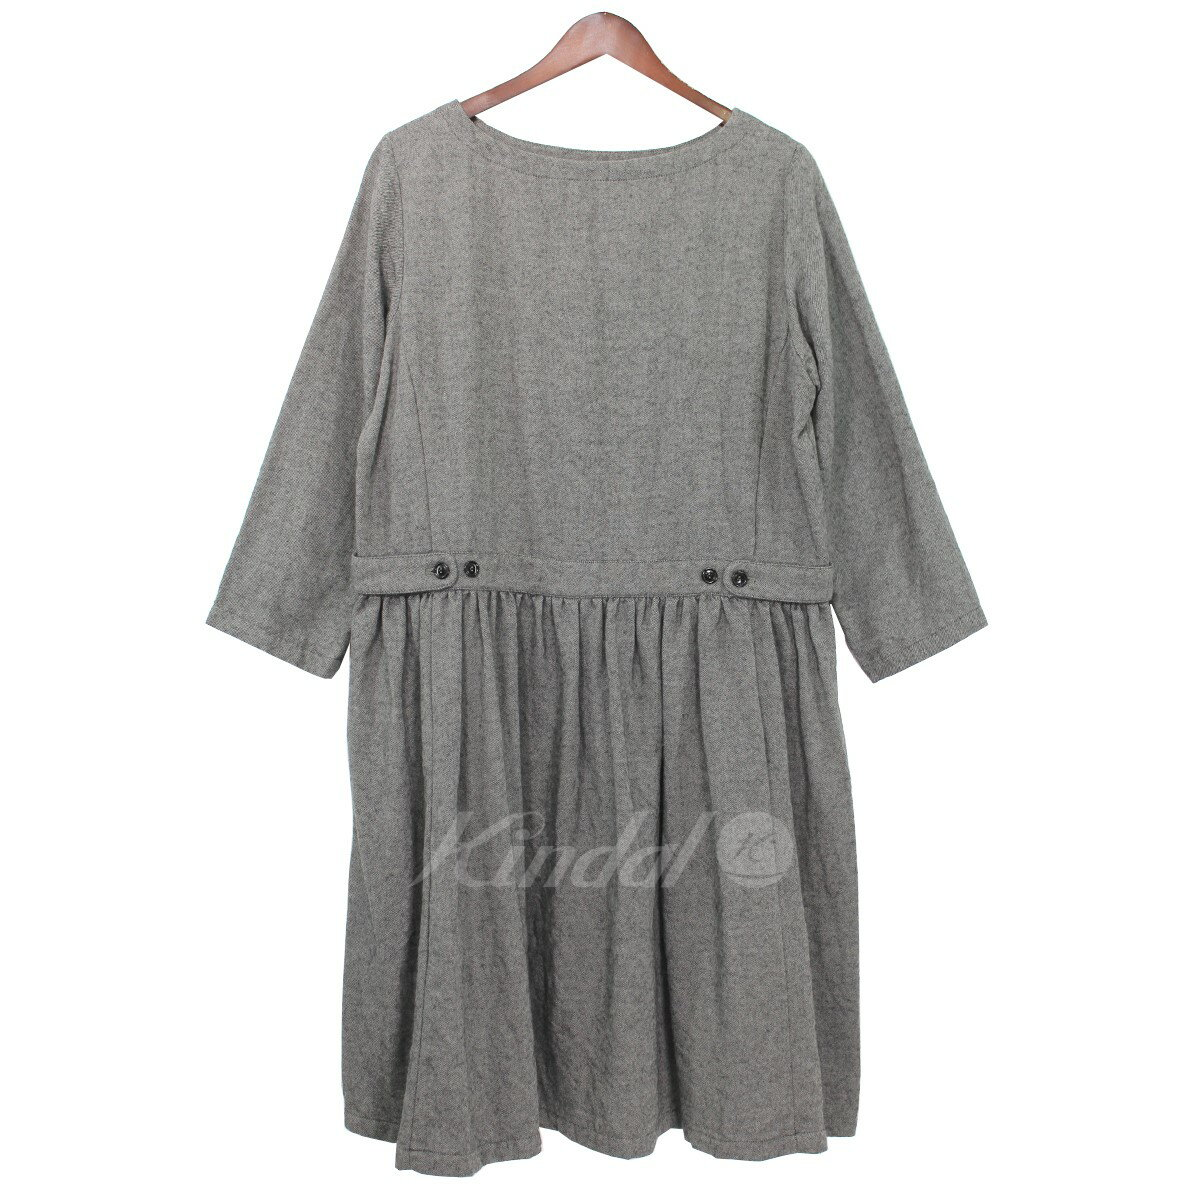 Graynest Wool Dress Robe Cotton Robe Nest 14aw RLcj54q3AS